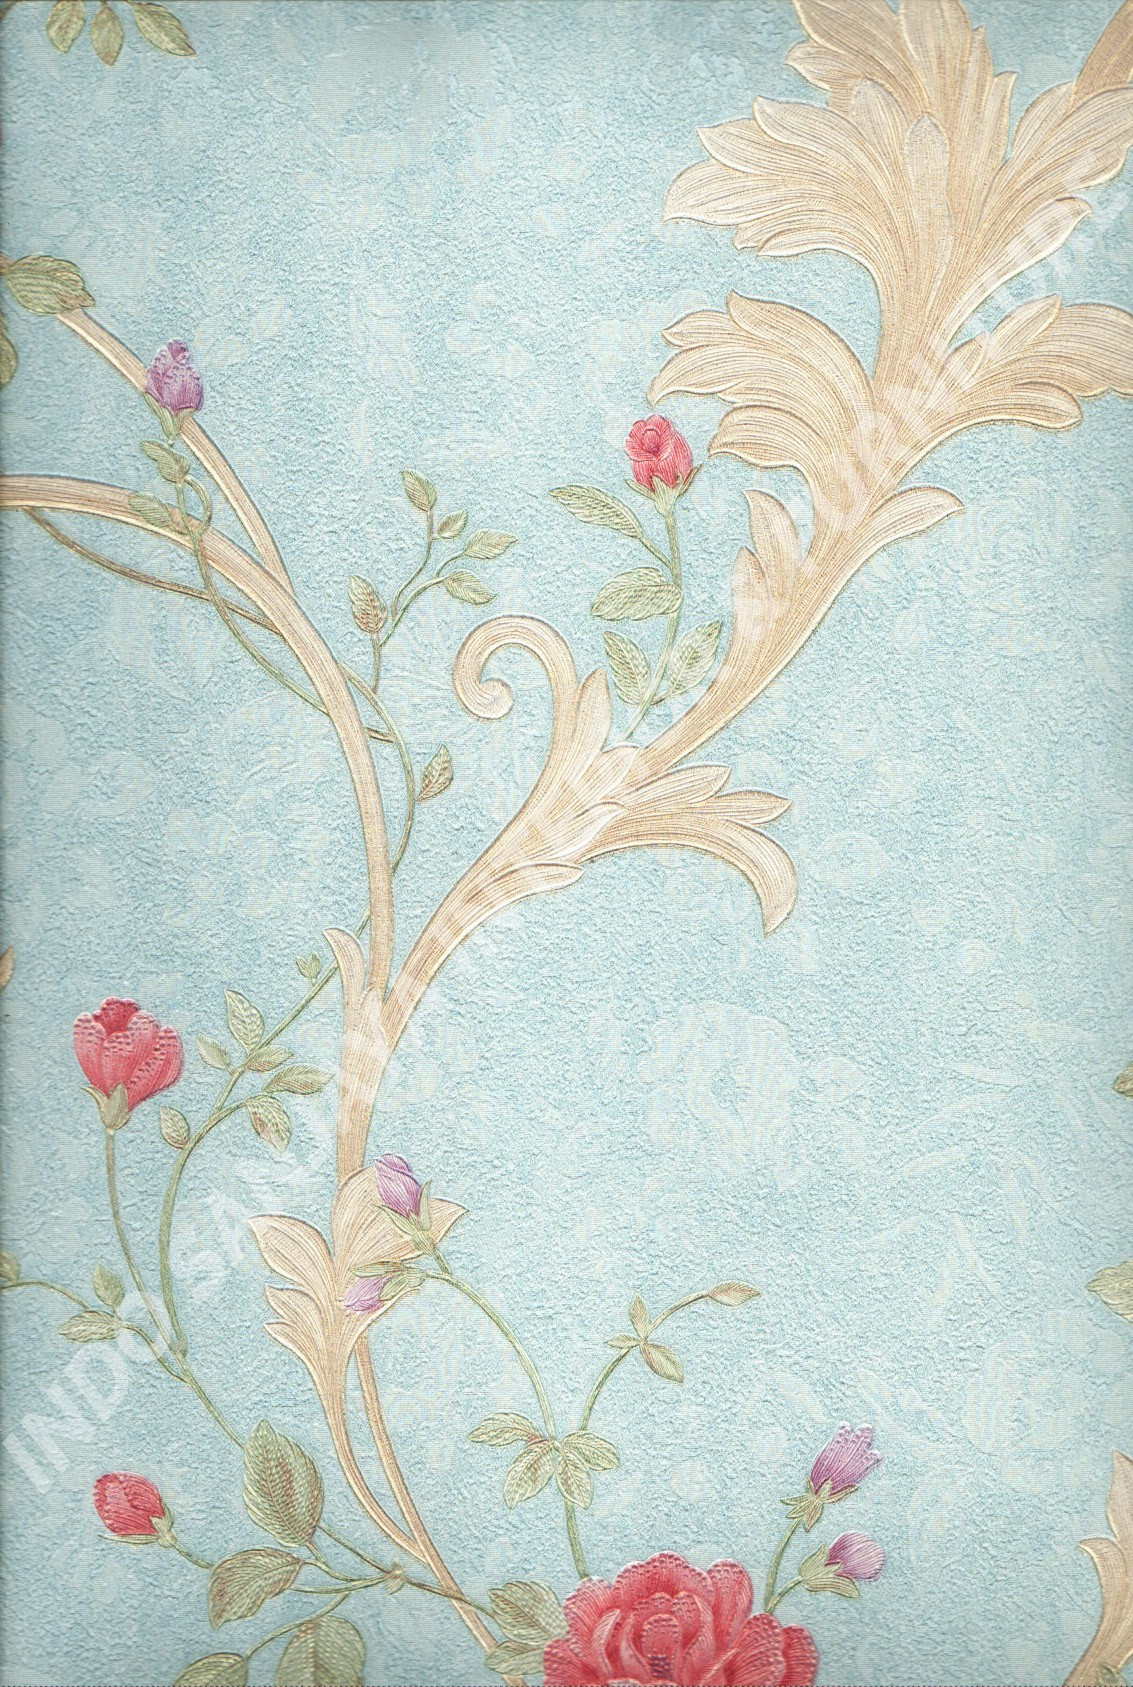 wallpaper   Wallpaper Bunga 51009-4:51009-4 corak  warna